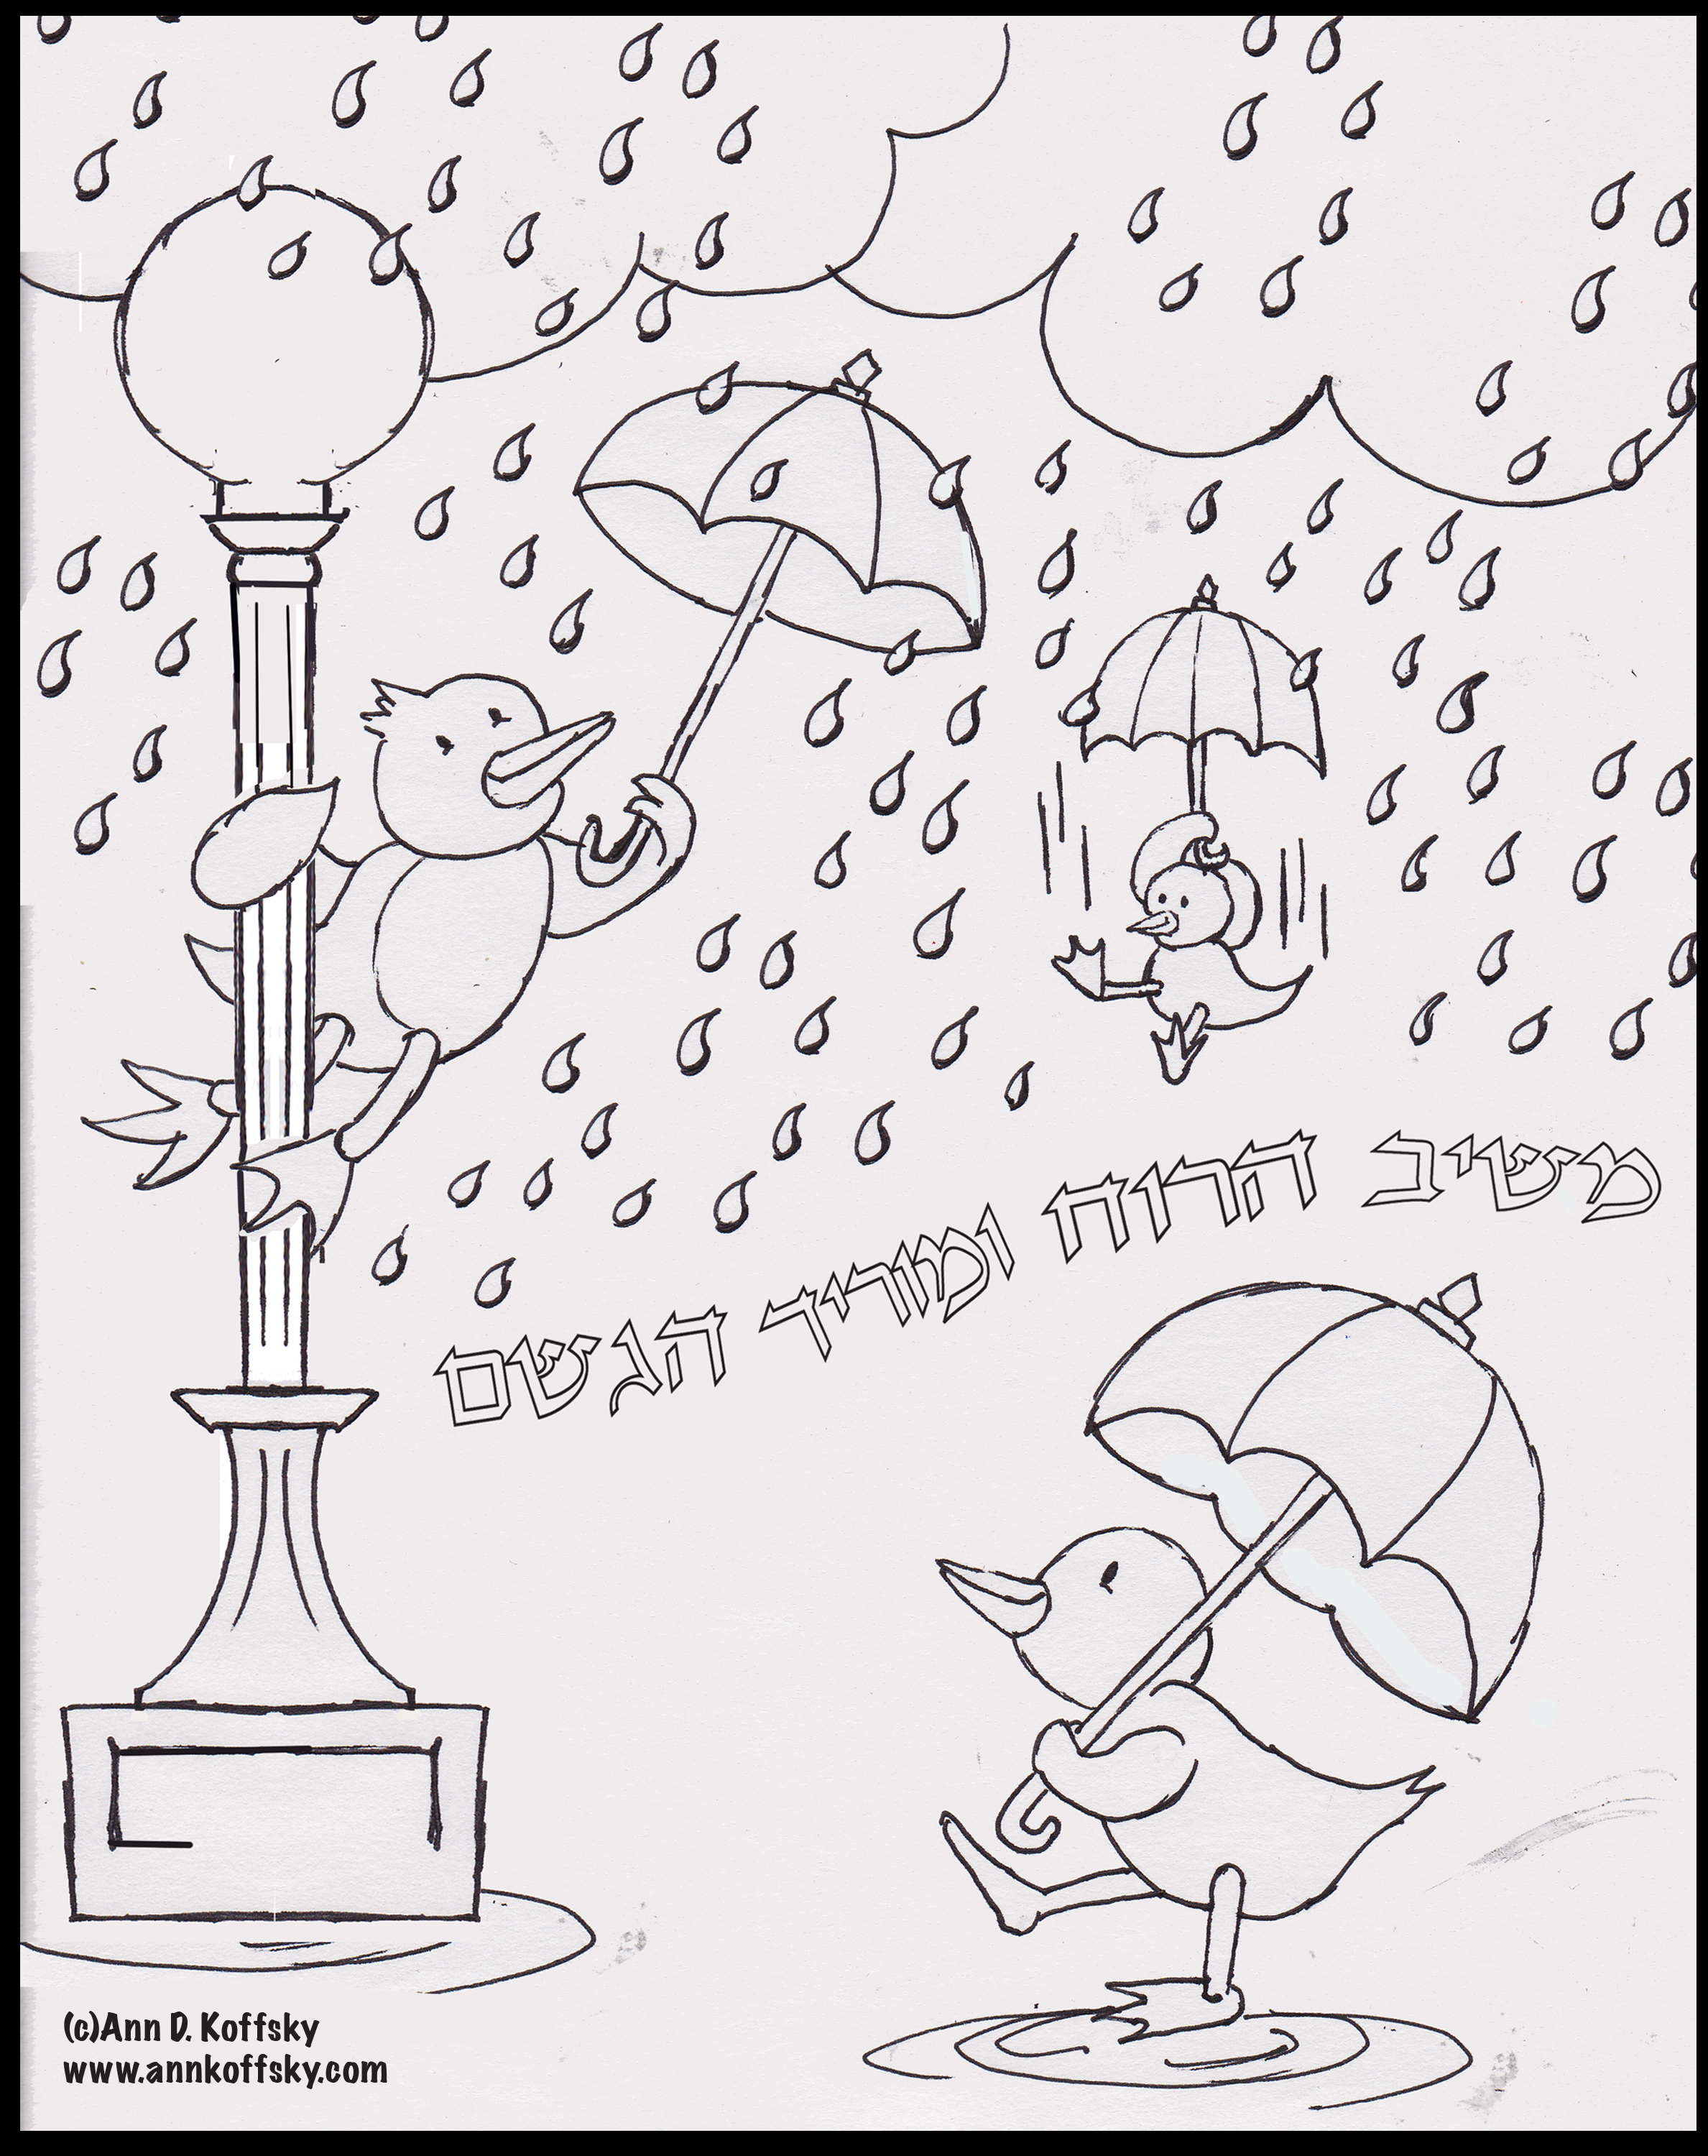 Free Rainy Season Images For Kids, Download Free Clip Art